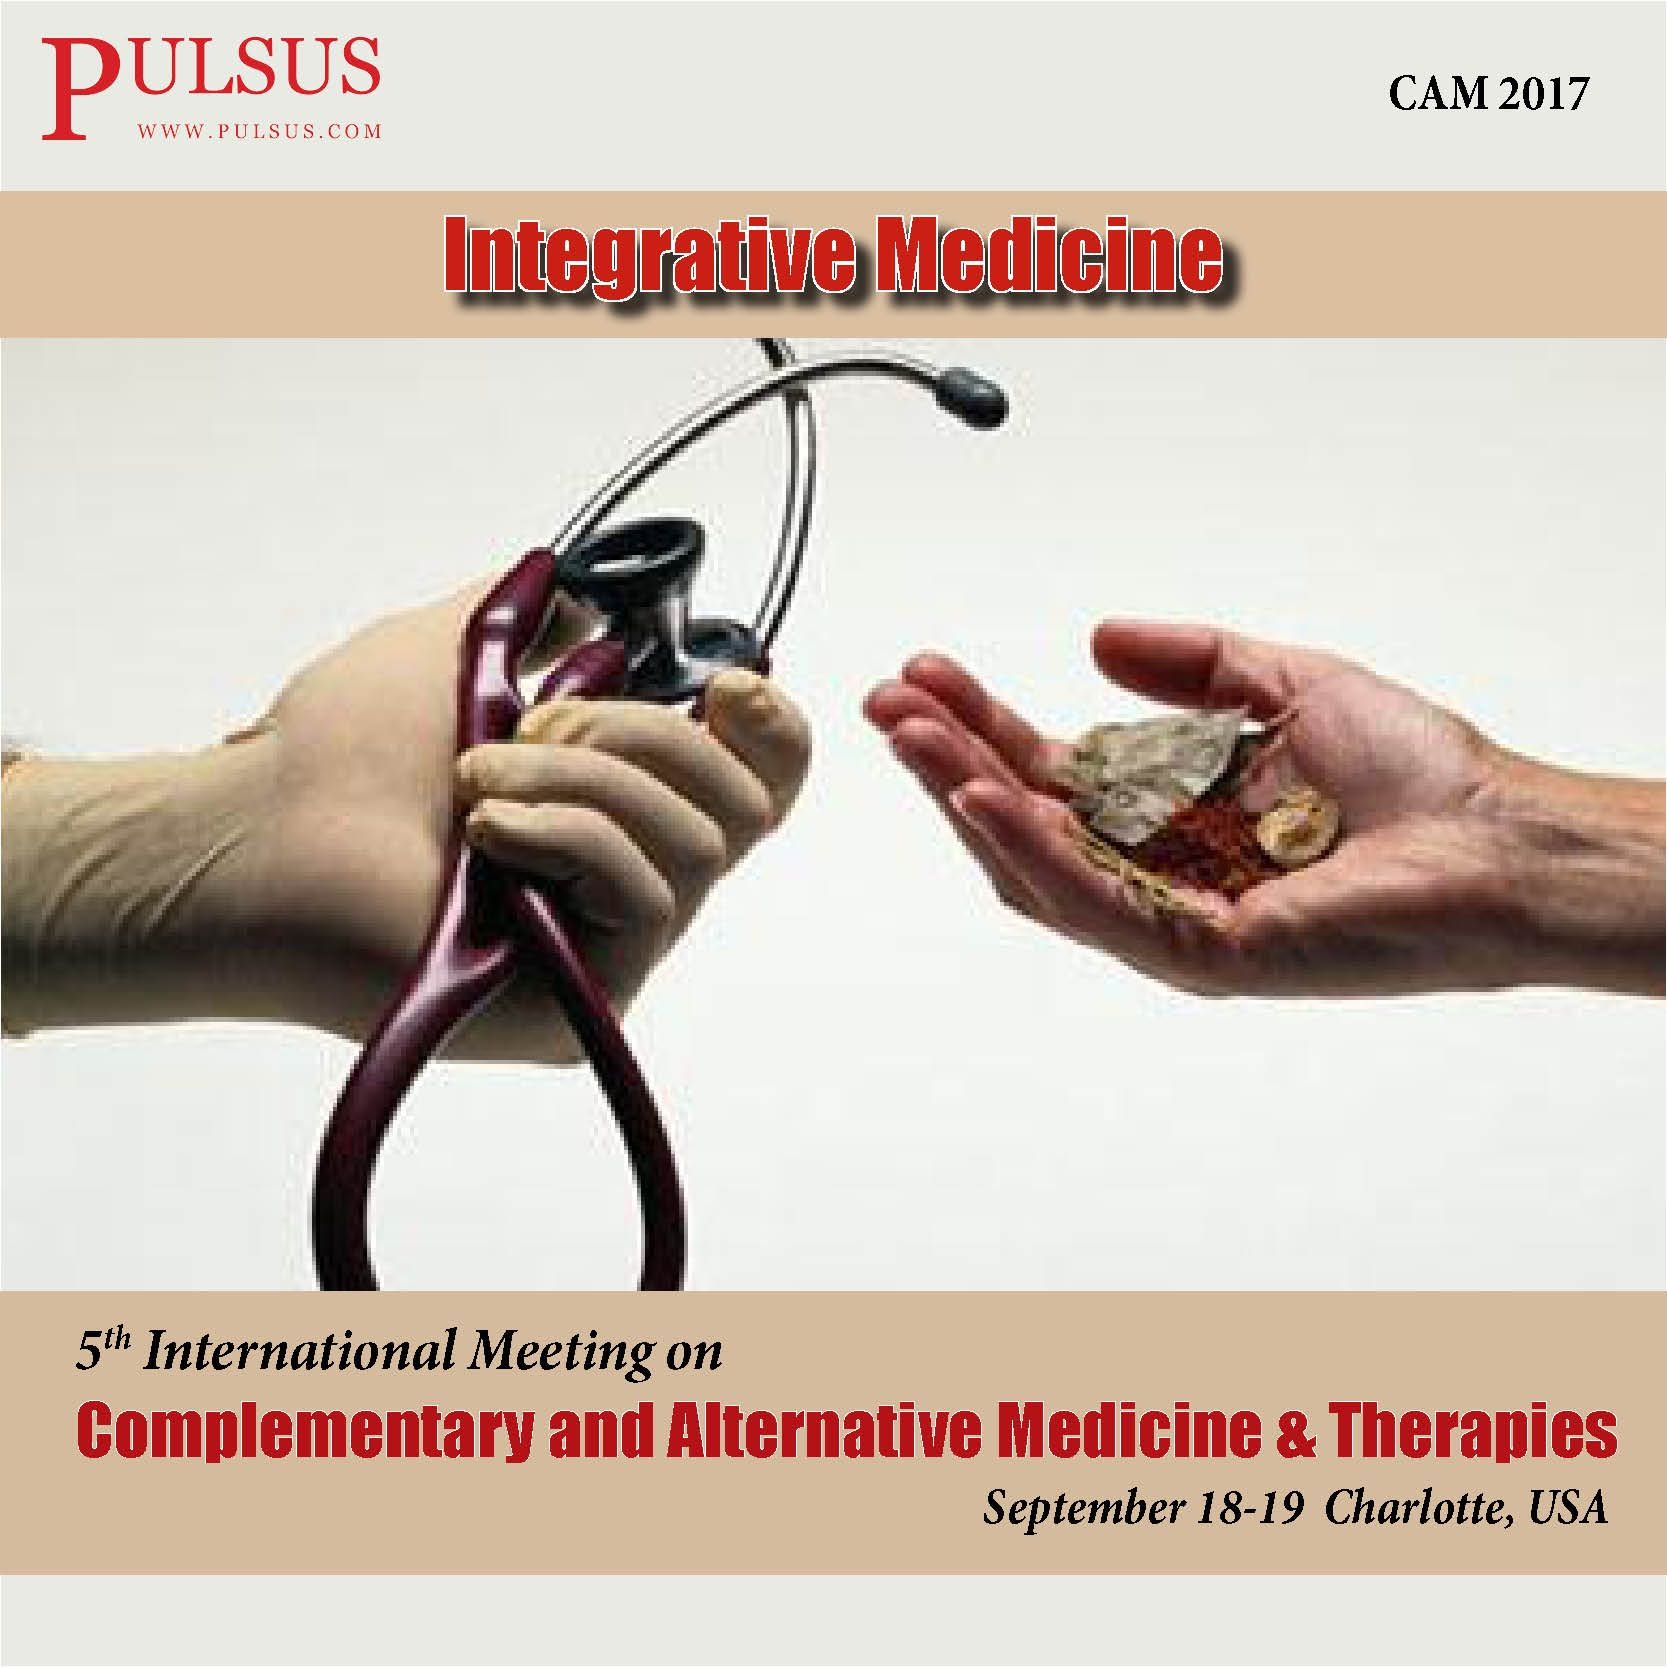 What is Integrative Medicine? The study of relationship